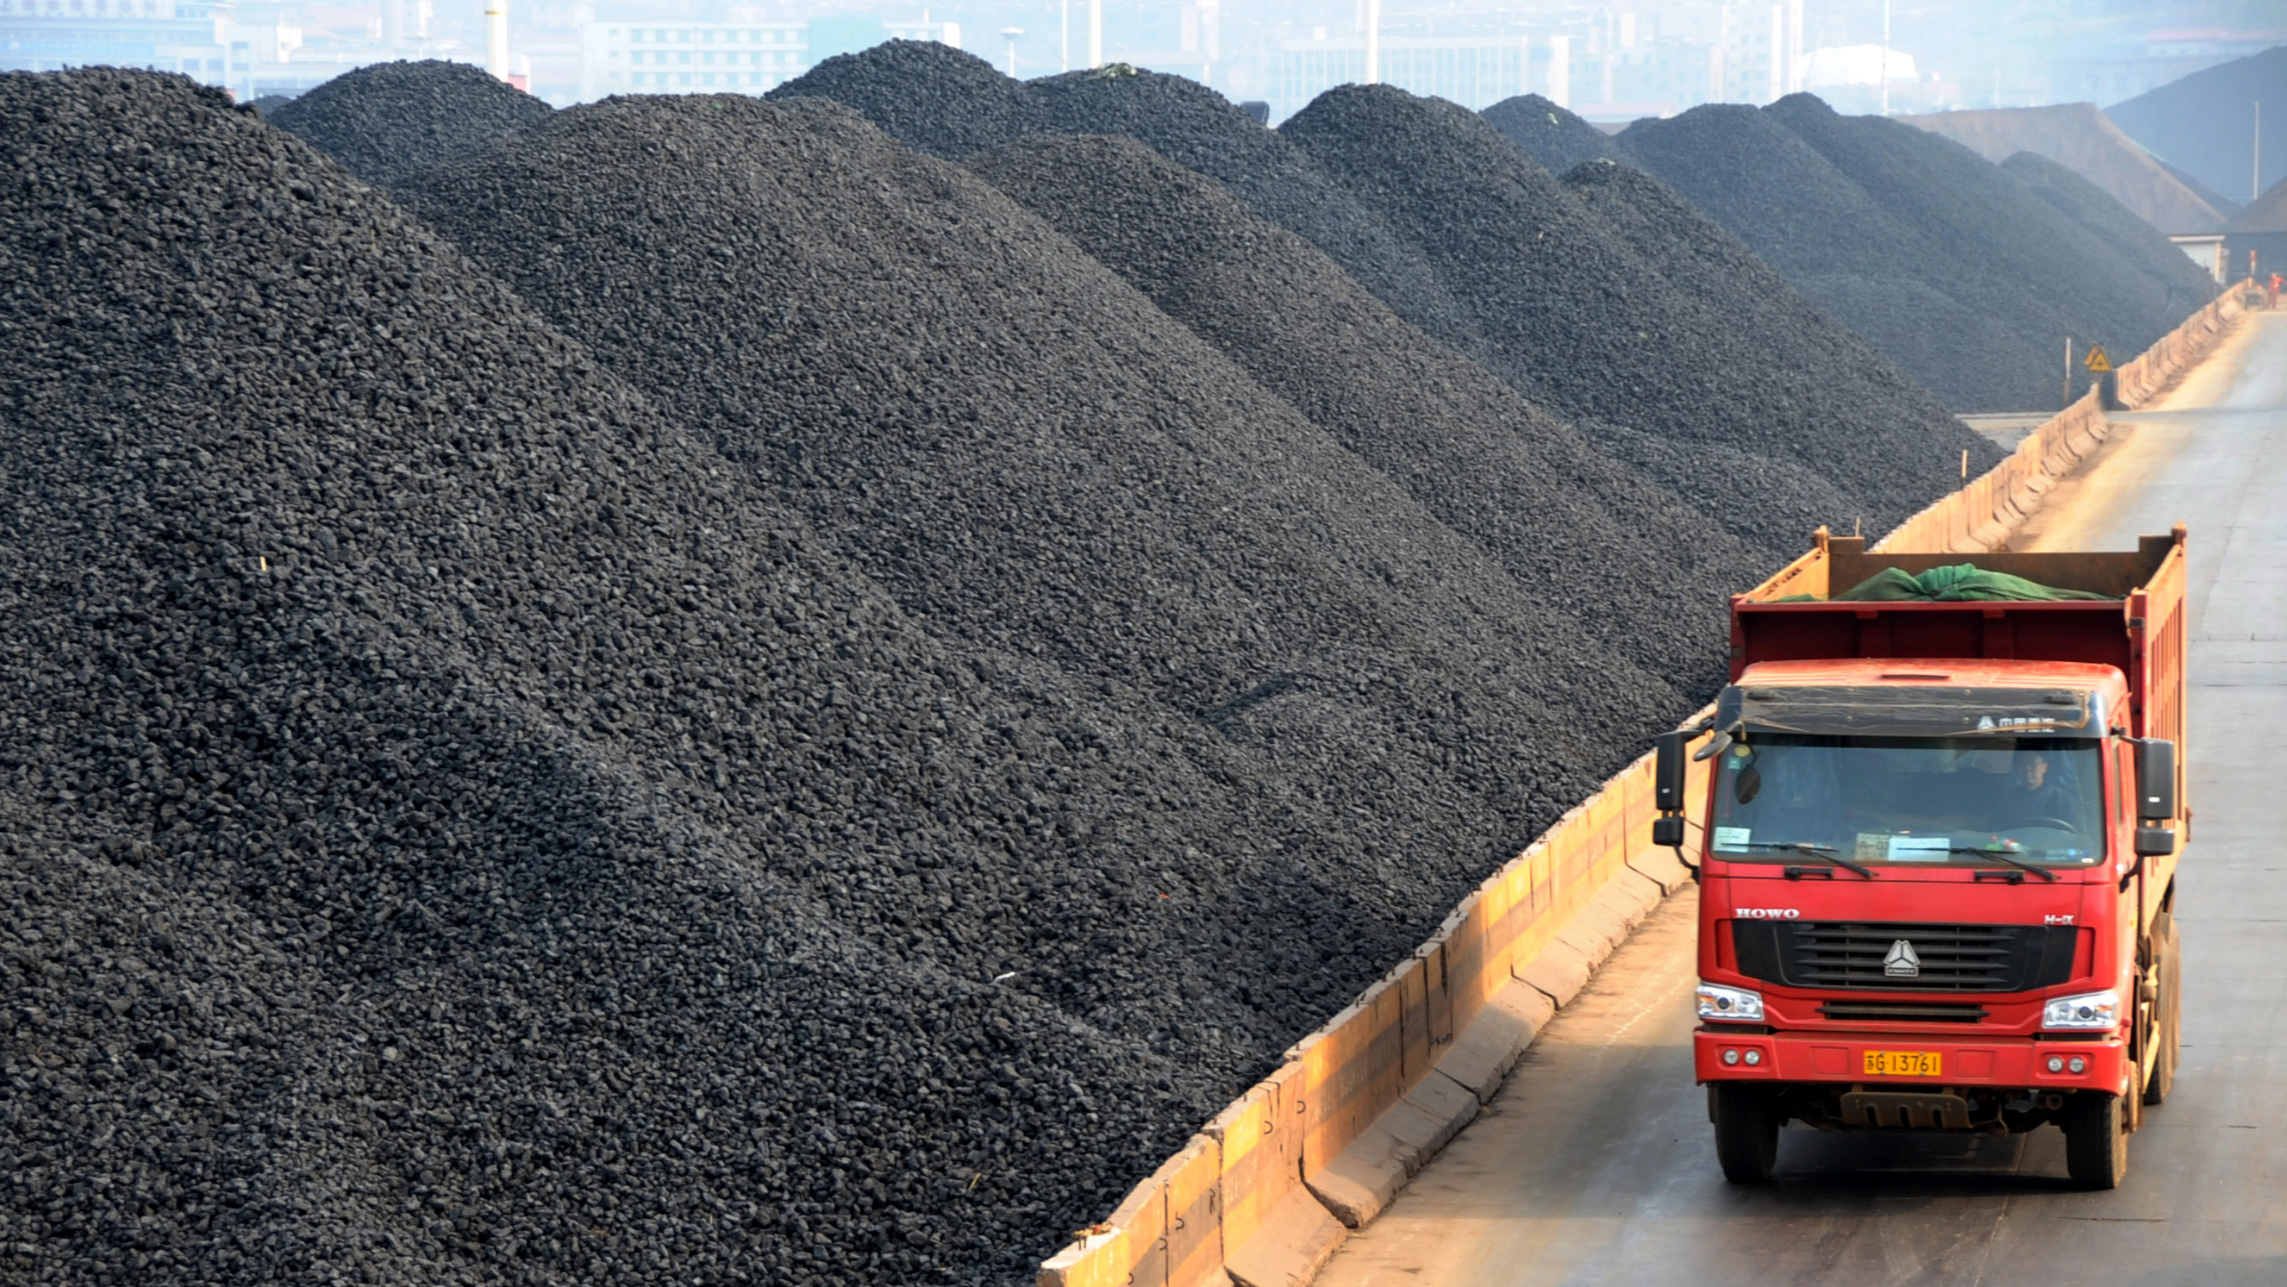 -A truck passes by piles of coal at a coalyard at the Port of Lianyungang in Lianyungang city, east Chinas Jiangsu province, 9 April 2011. China is expected to consume approximately 4 billion metric tons of coal in 2015, 700 million metric tons more than that of 2010, said Chen Qi, director of the regulating division at the China National Coal Association (CNCA). Chen added that about 300 million metric tons of coal reserves will be added this year.(Imaginechina via AP Images